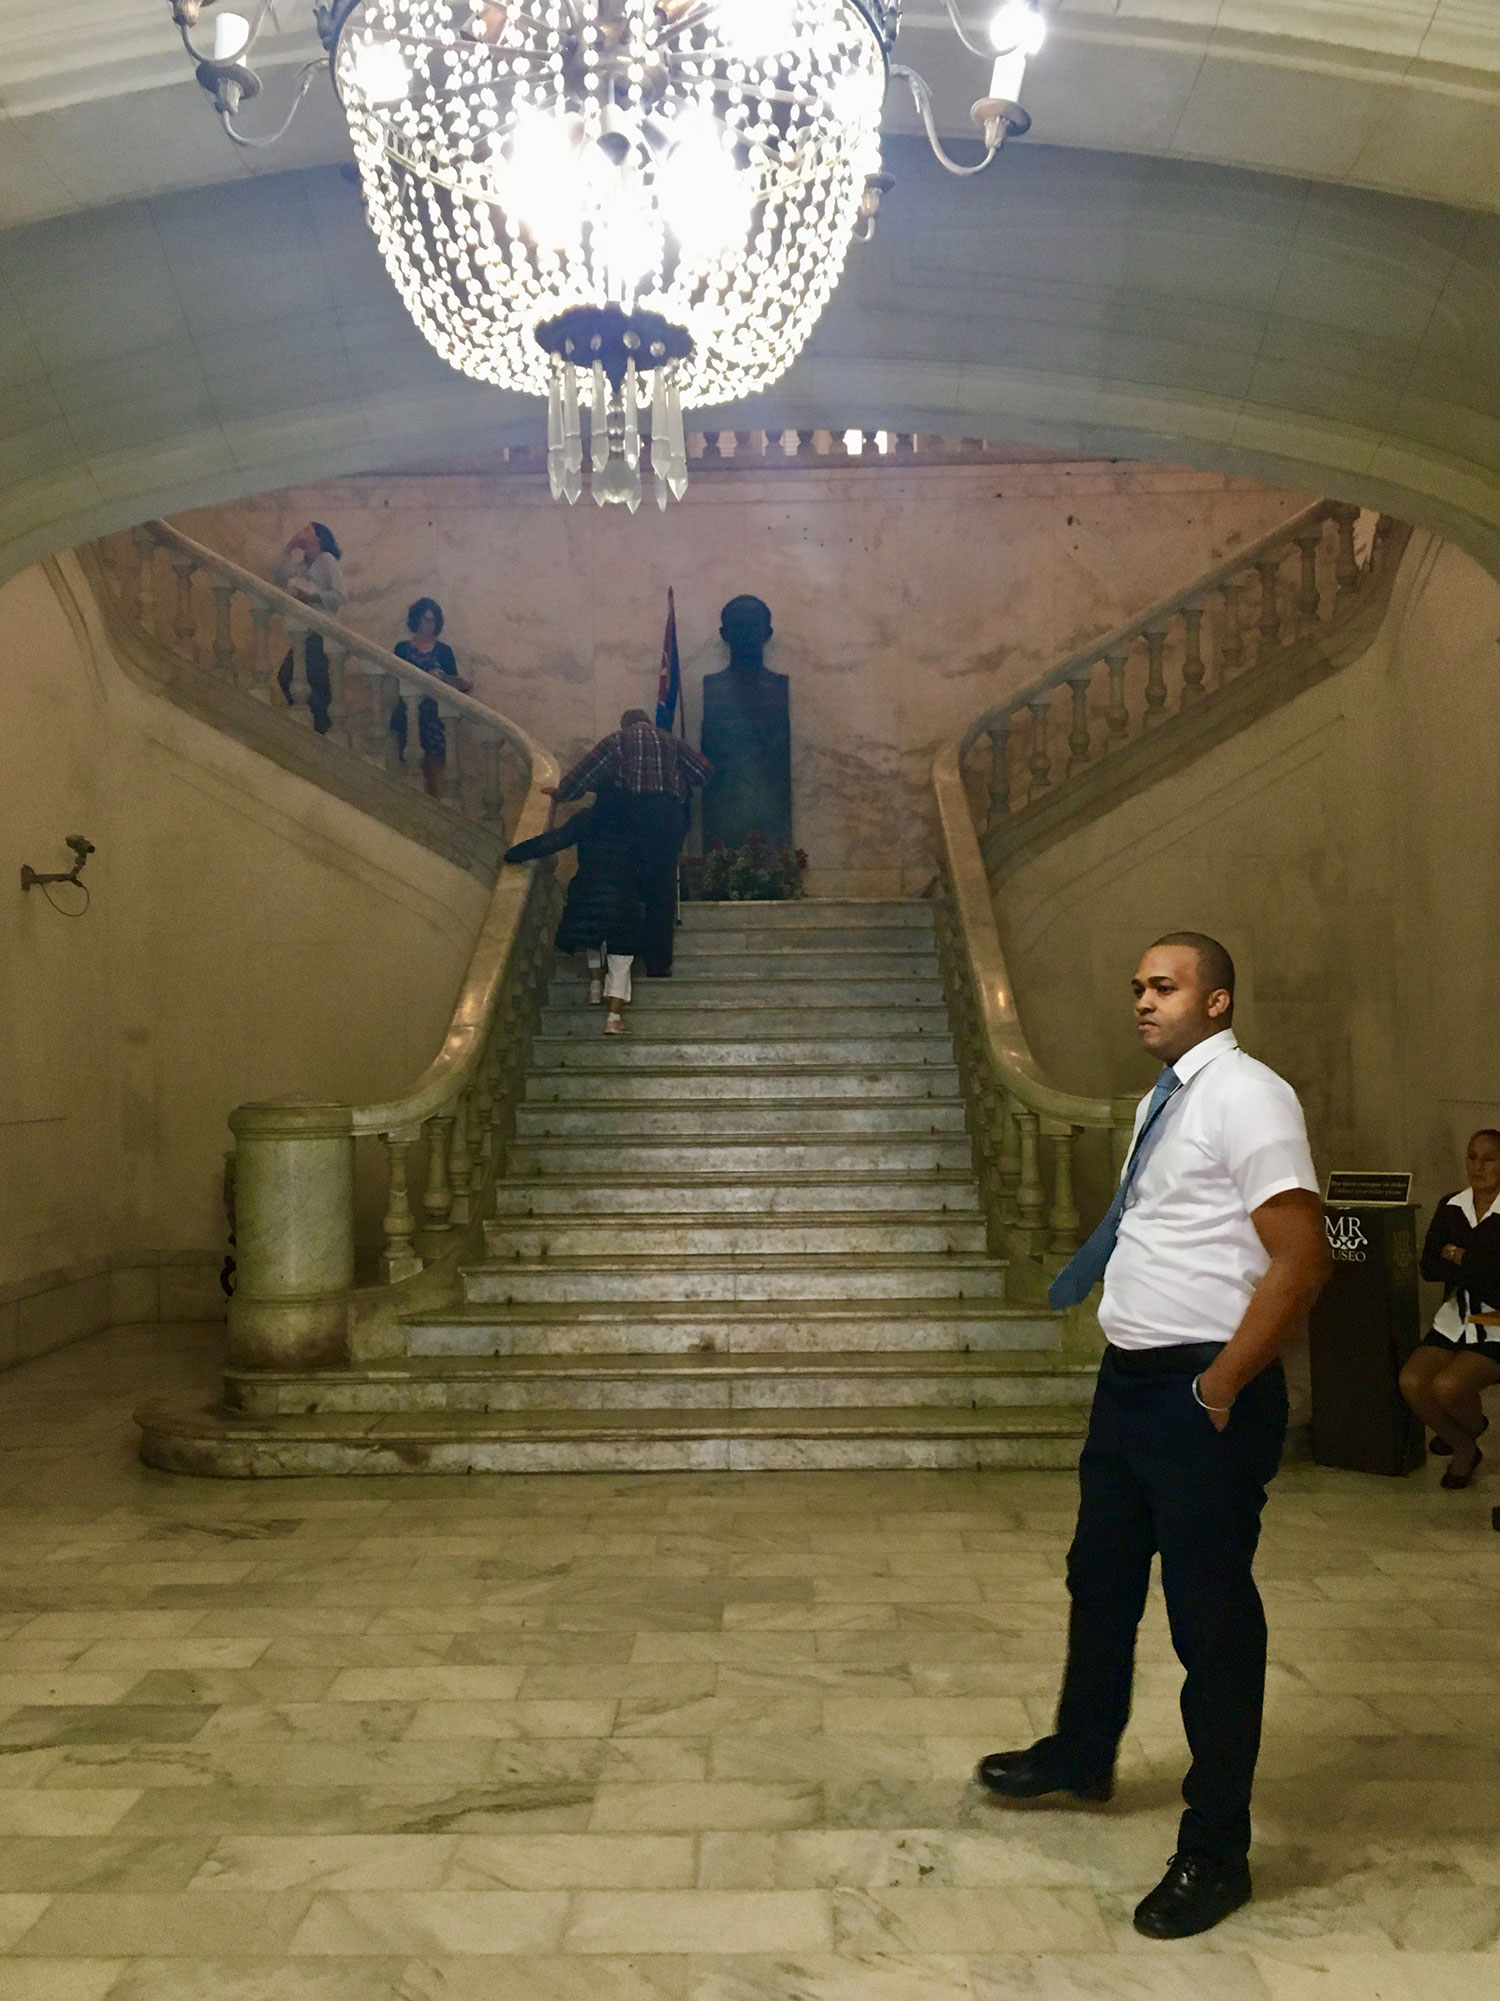 The guard and the main staircase with the bust of José Martí.